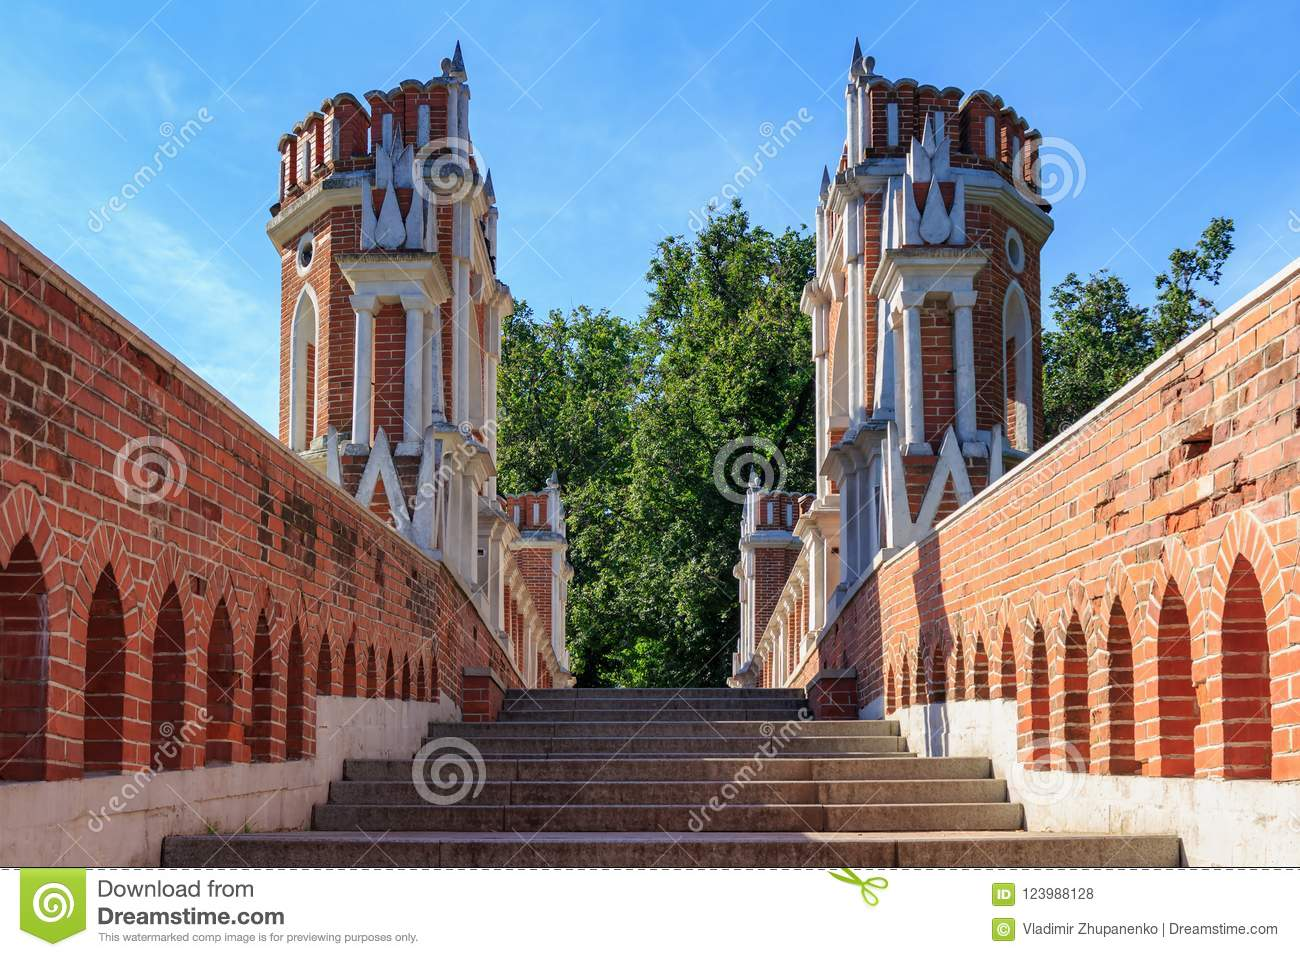 Moscow, Russia - August 12, 2018: Steps and towers of Figured bridge in Museum-reserve Tsaritsyno closeup on a blue sky background